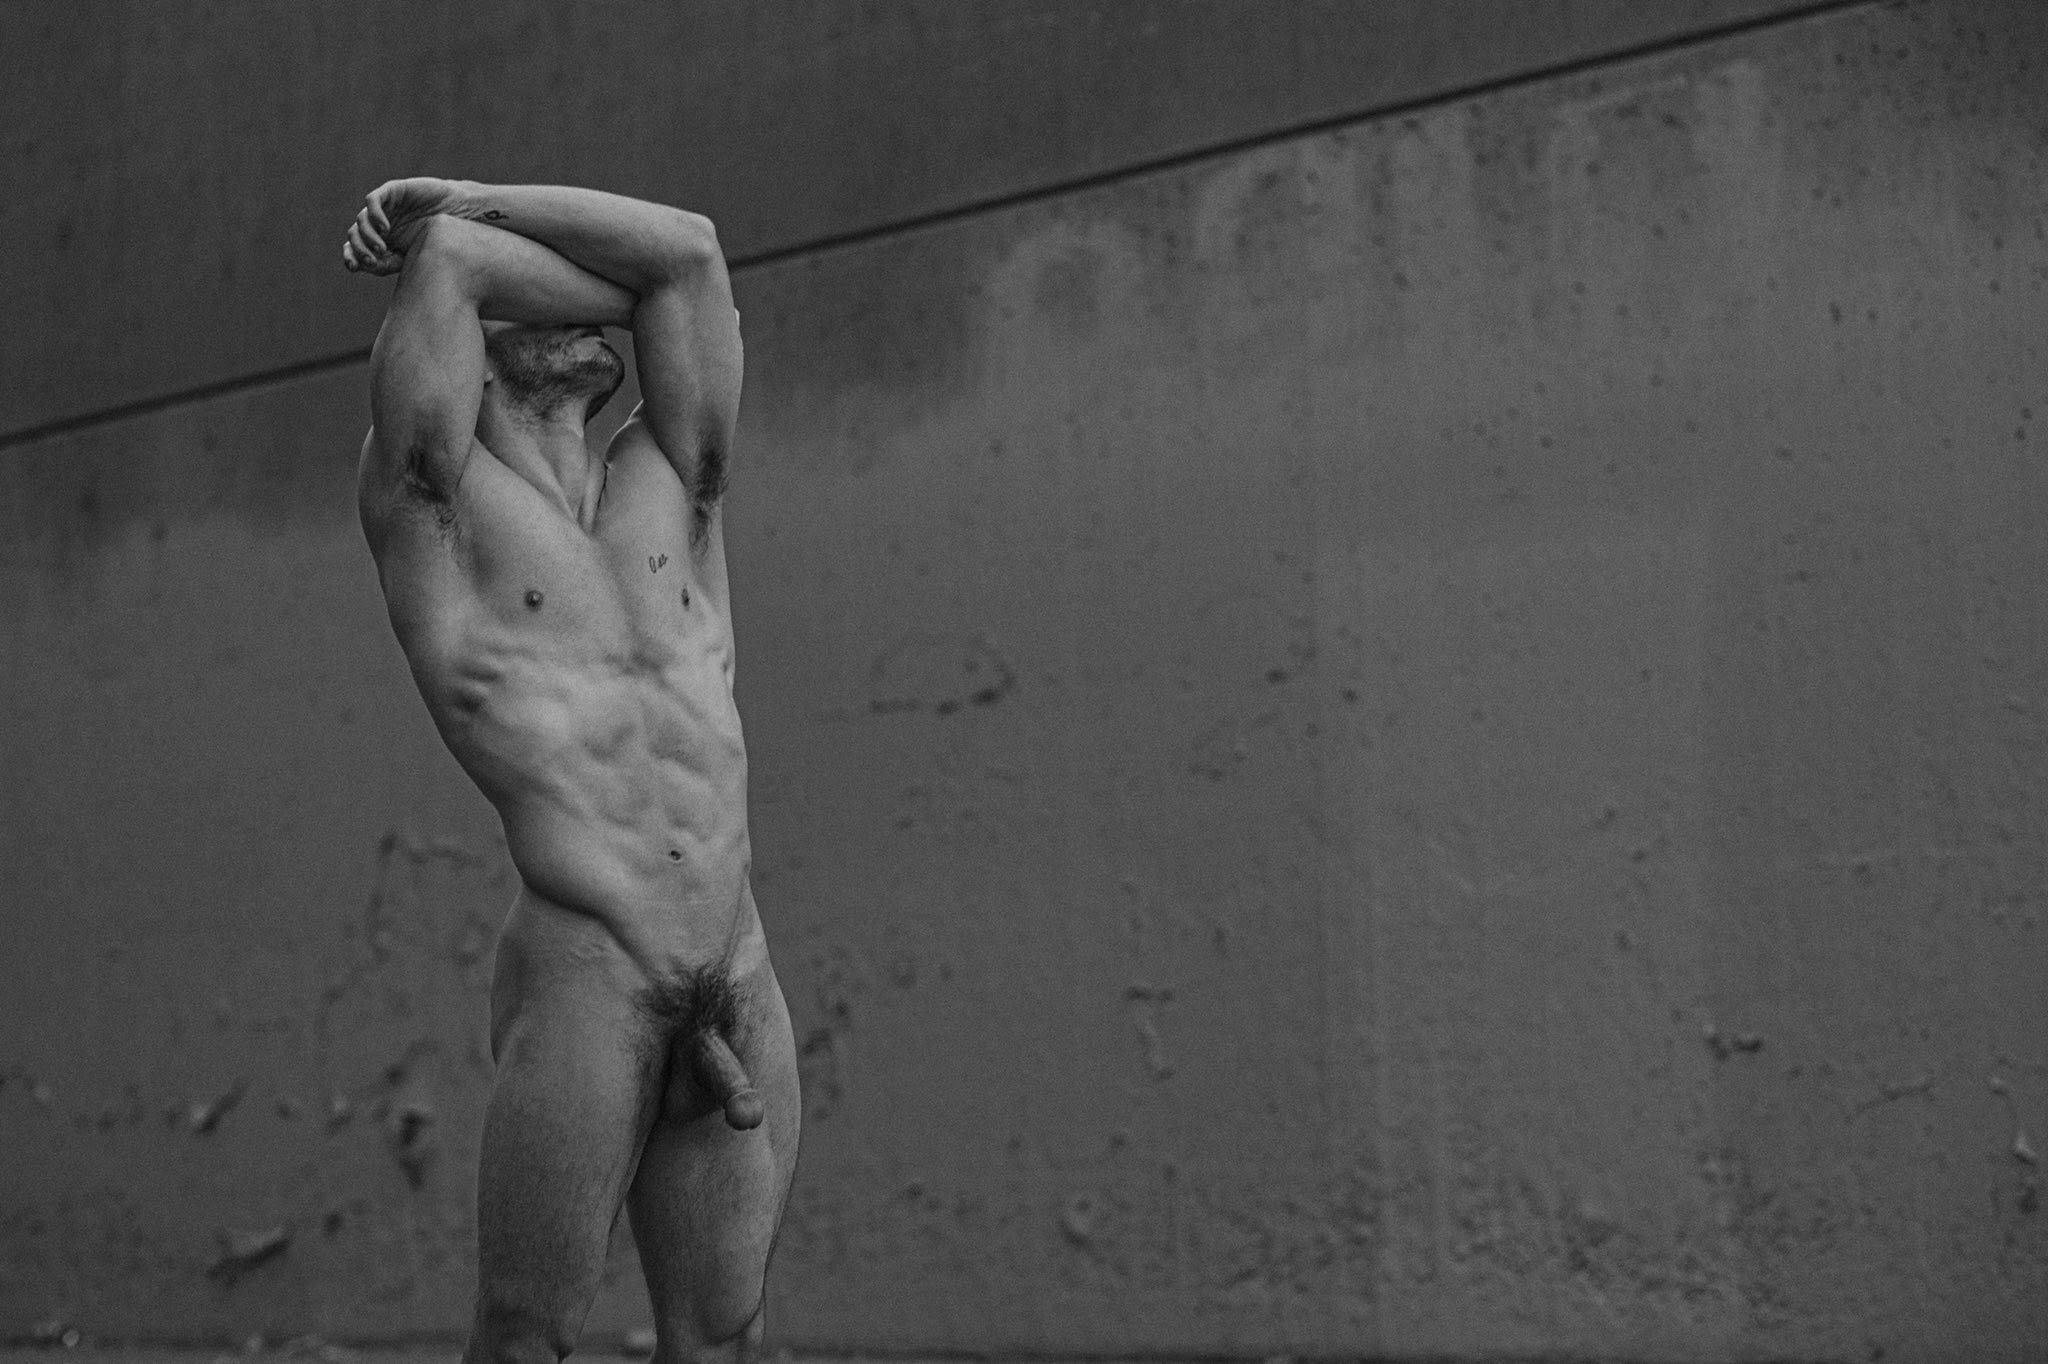 waLL, by Dominic Adriano Albano (NSFW).